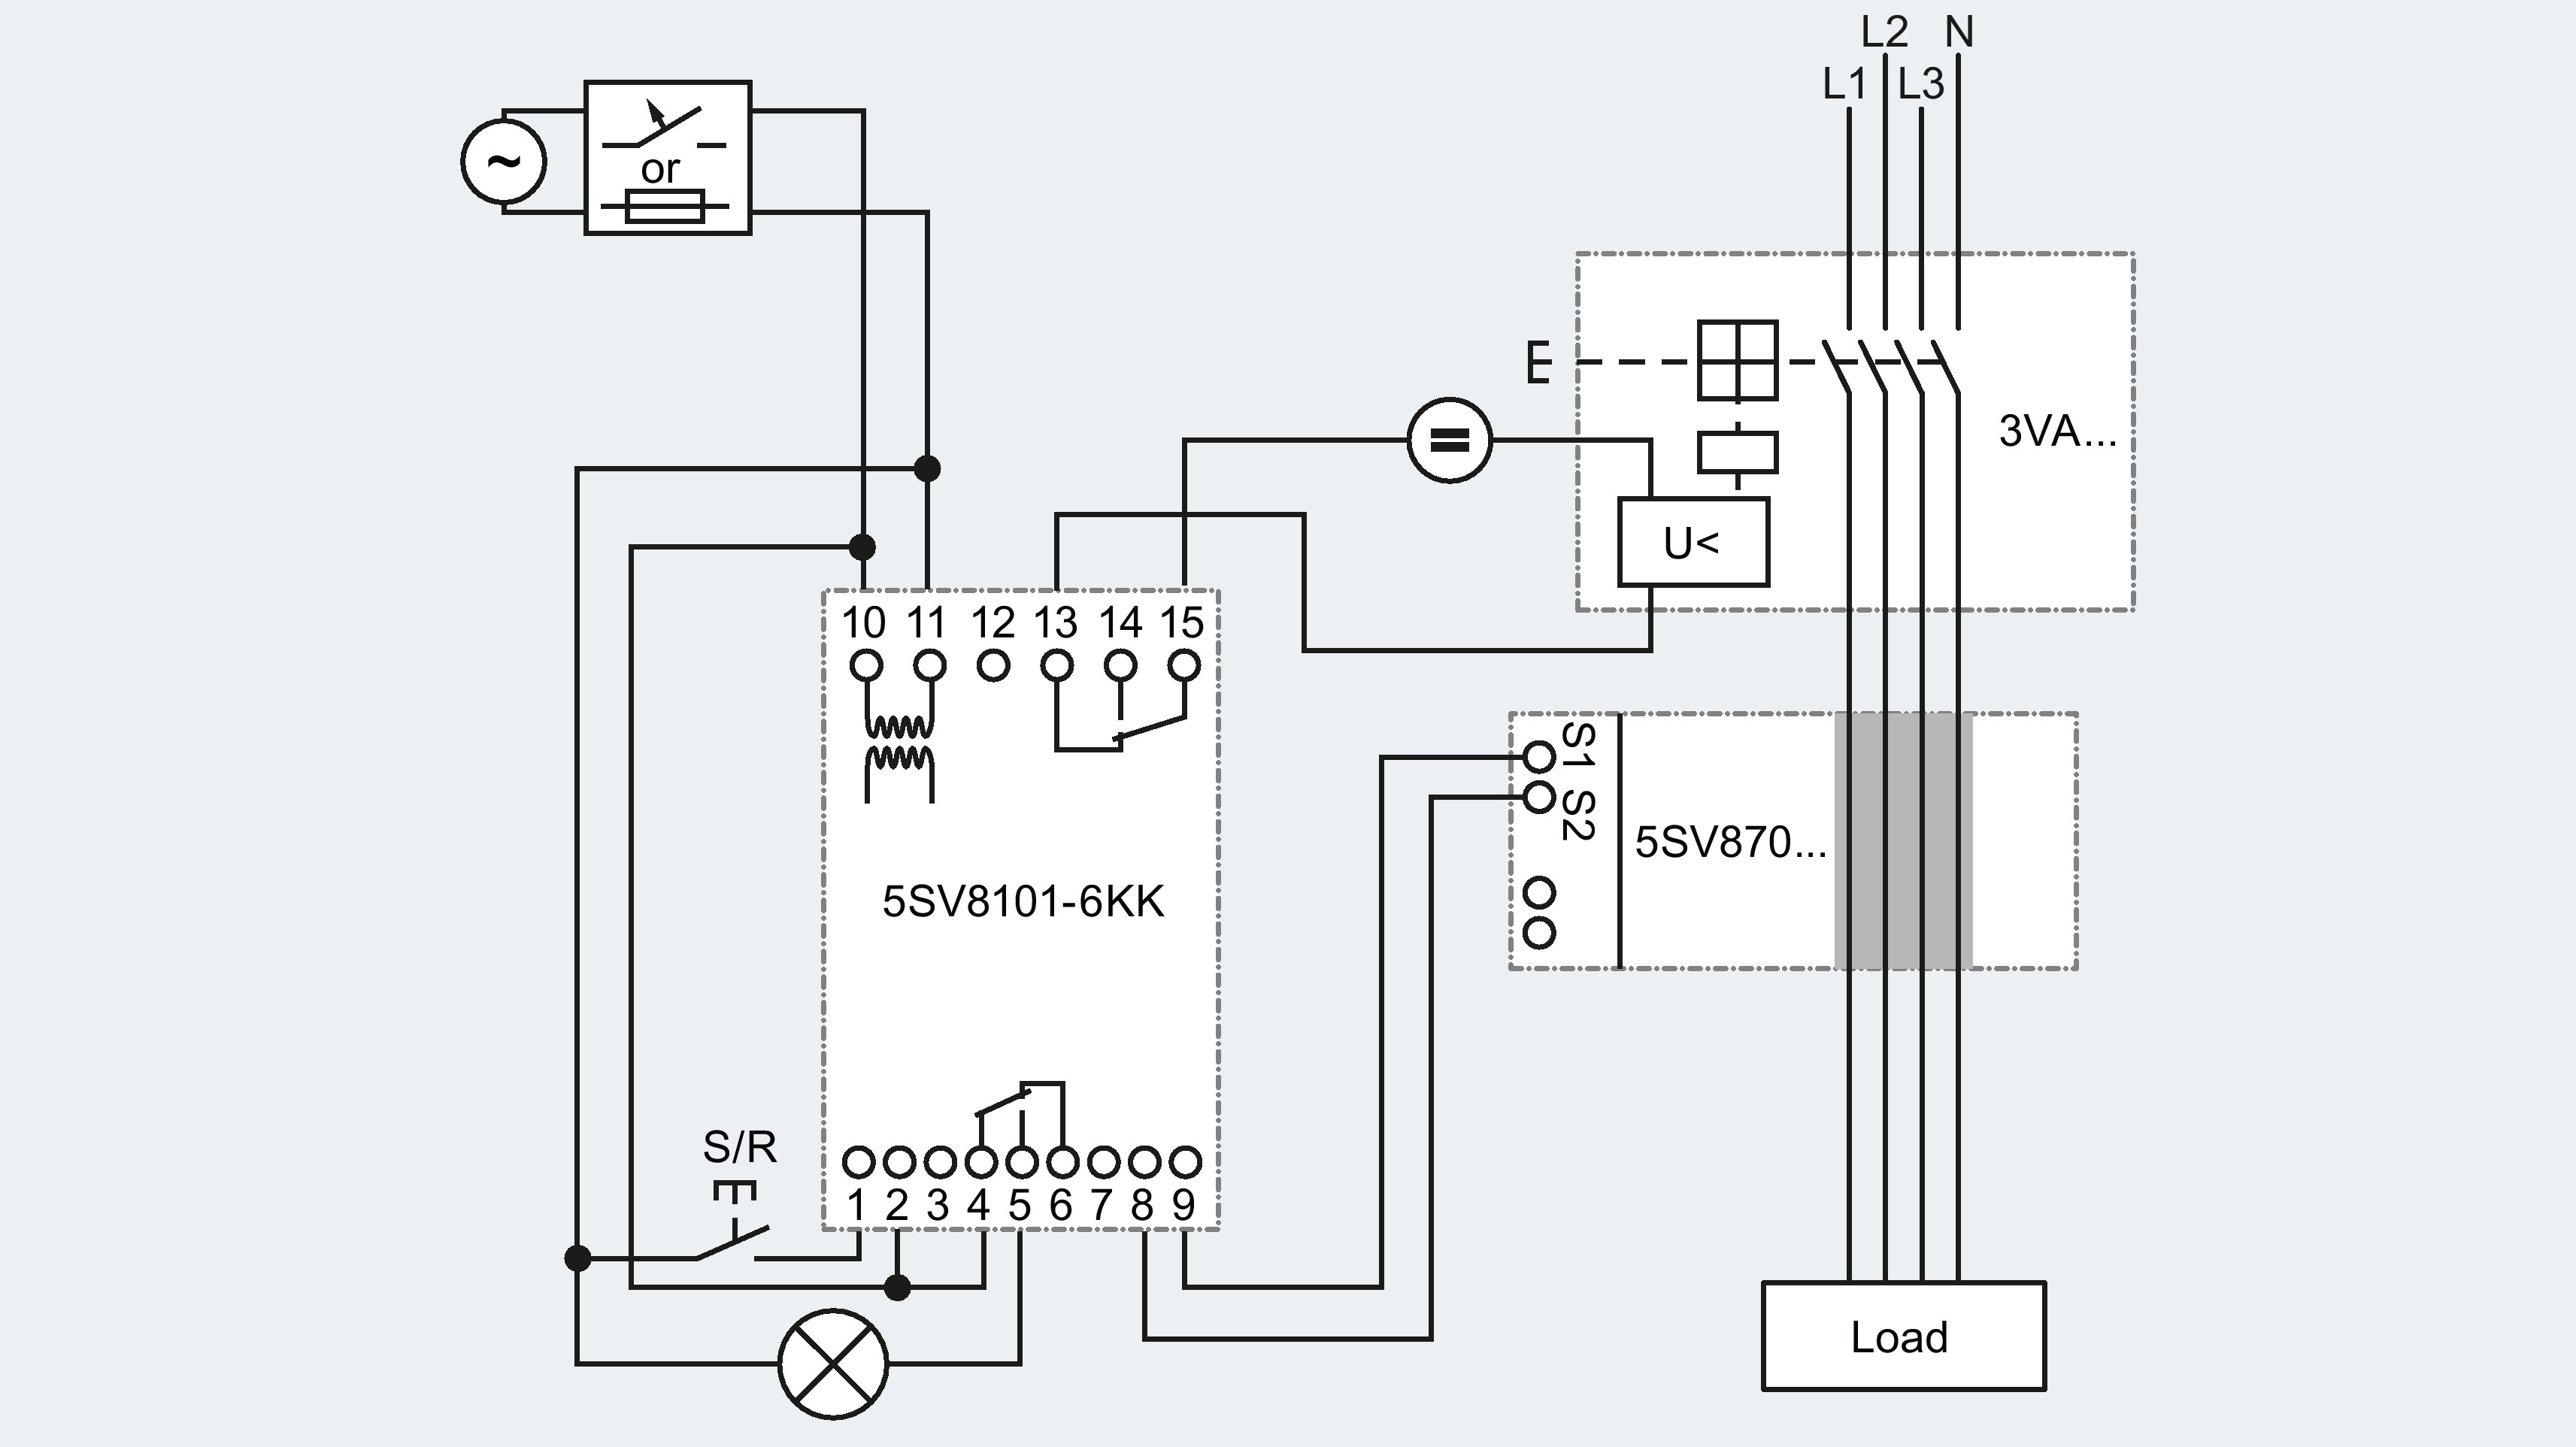 Siemens Shunt Trip Breaker Wiring Diagram Download